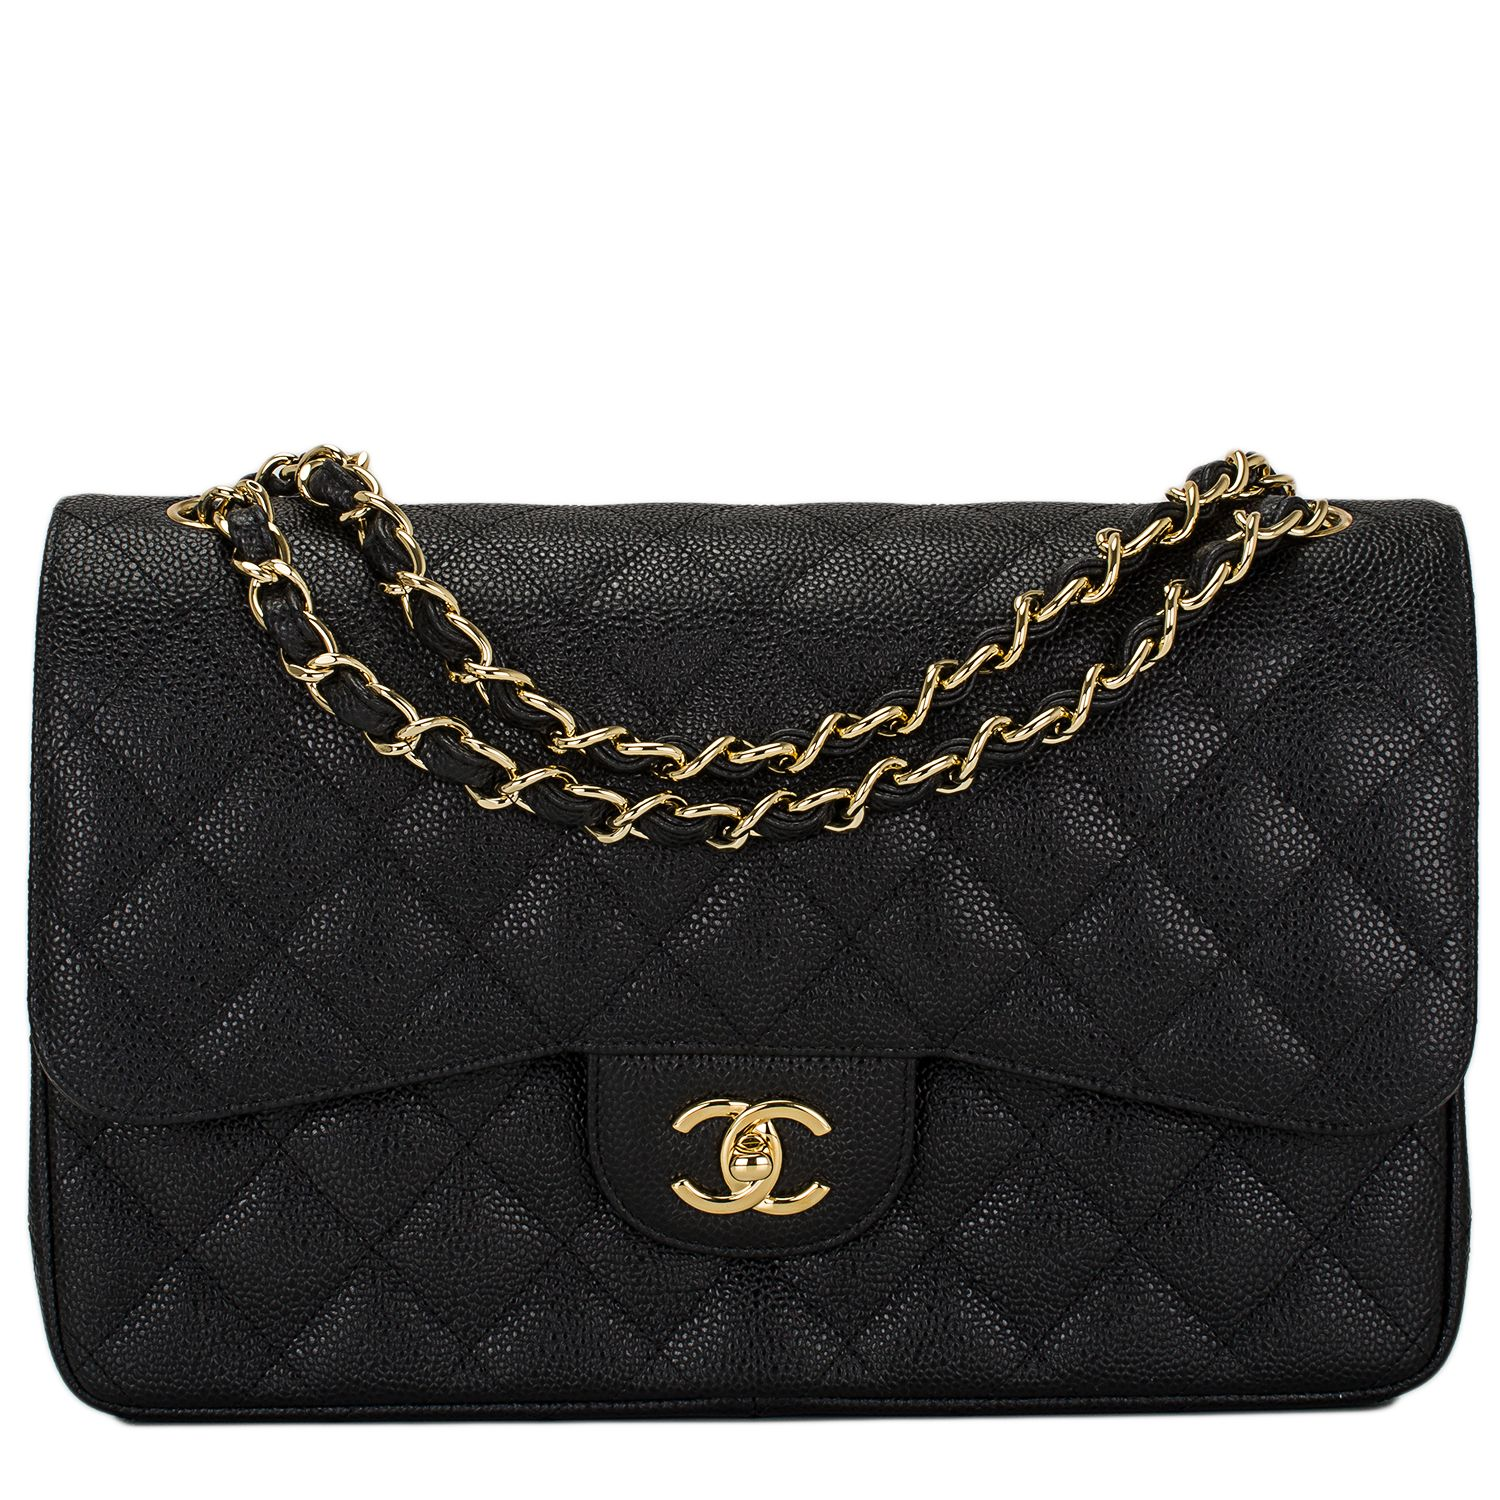 1f249ba88 Chanel Black Quilted Caviar Jumbo Classic Double Flap Bag Gold Hardware # chanel